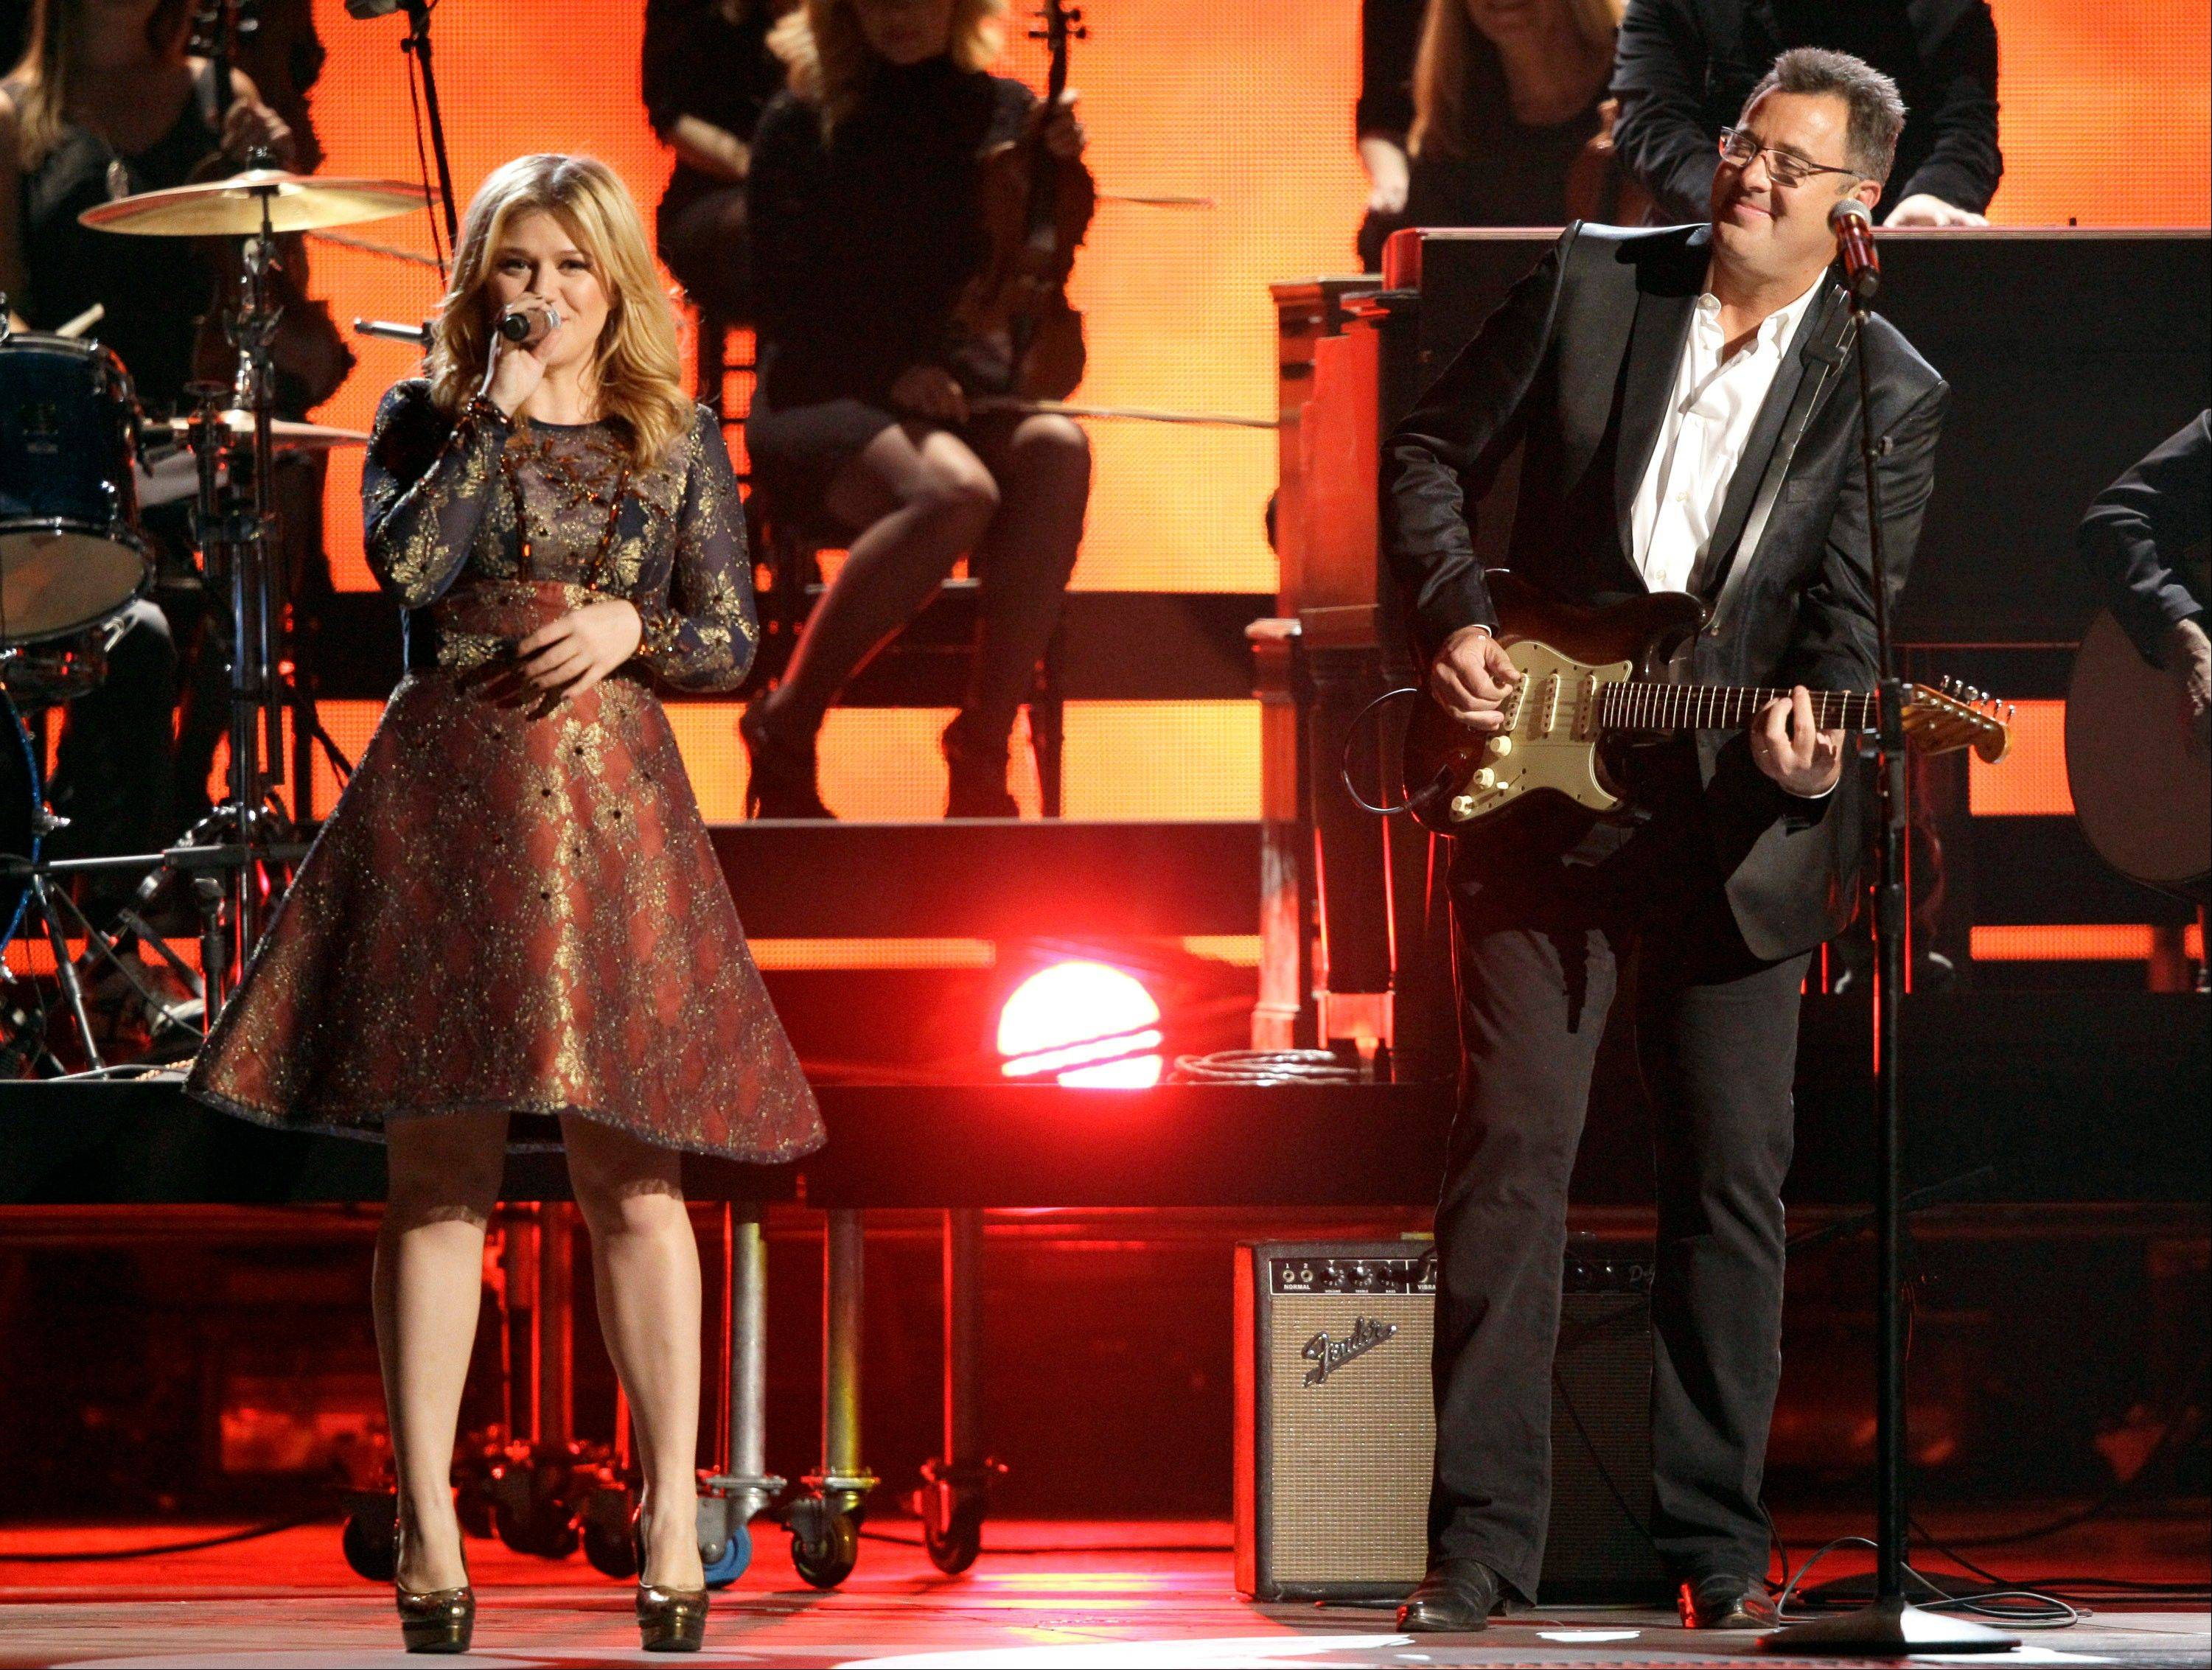 Kelly Clarkson, left, and Vince Gill perform at the 46th Annual Country Music Awards at the Bridgestone Arena on Thursday, Nov. 1, 2012, in Nashville, Tenn.